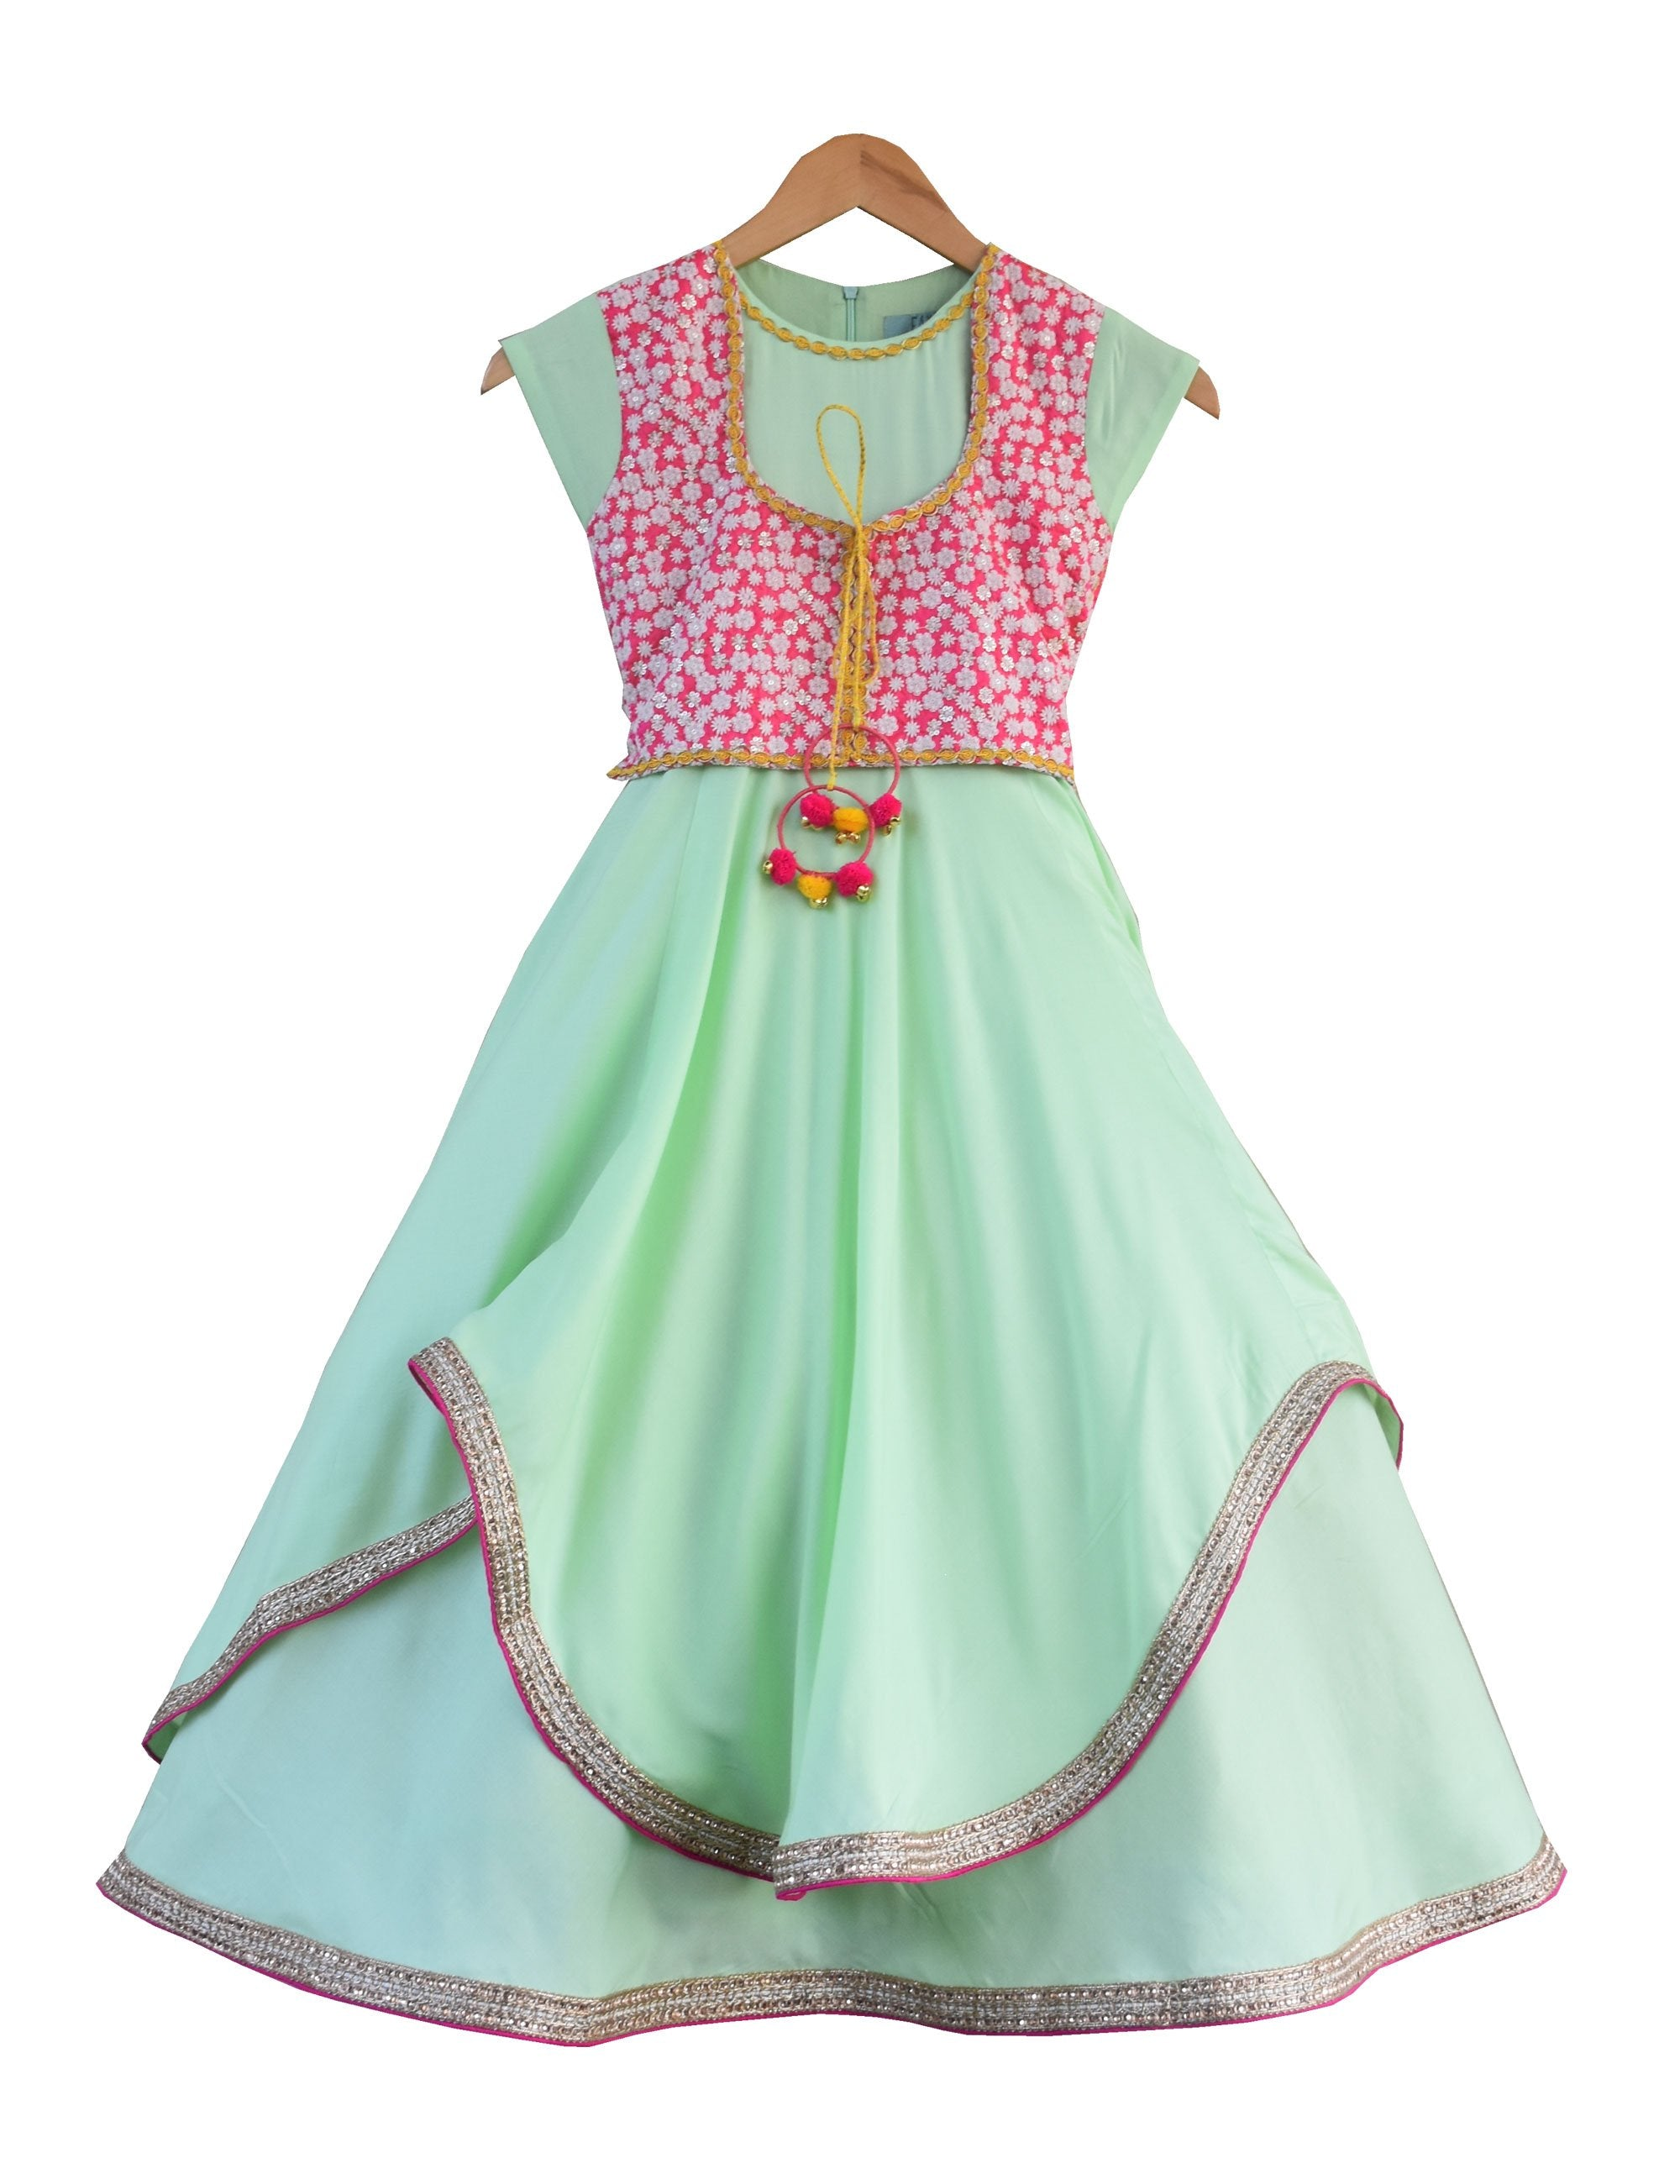 Anarkali Dress with Attached Embroidery Jacket in Green & Pink Colour for Girls